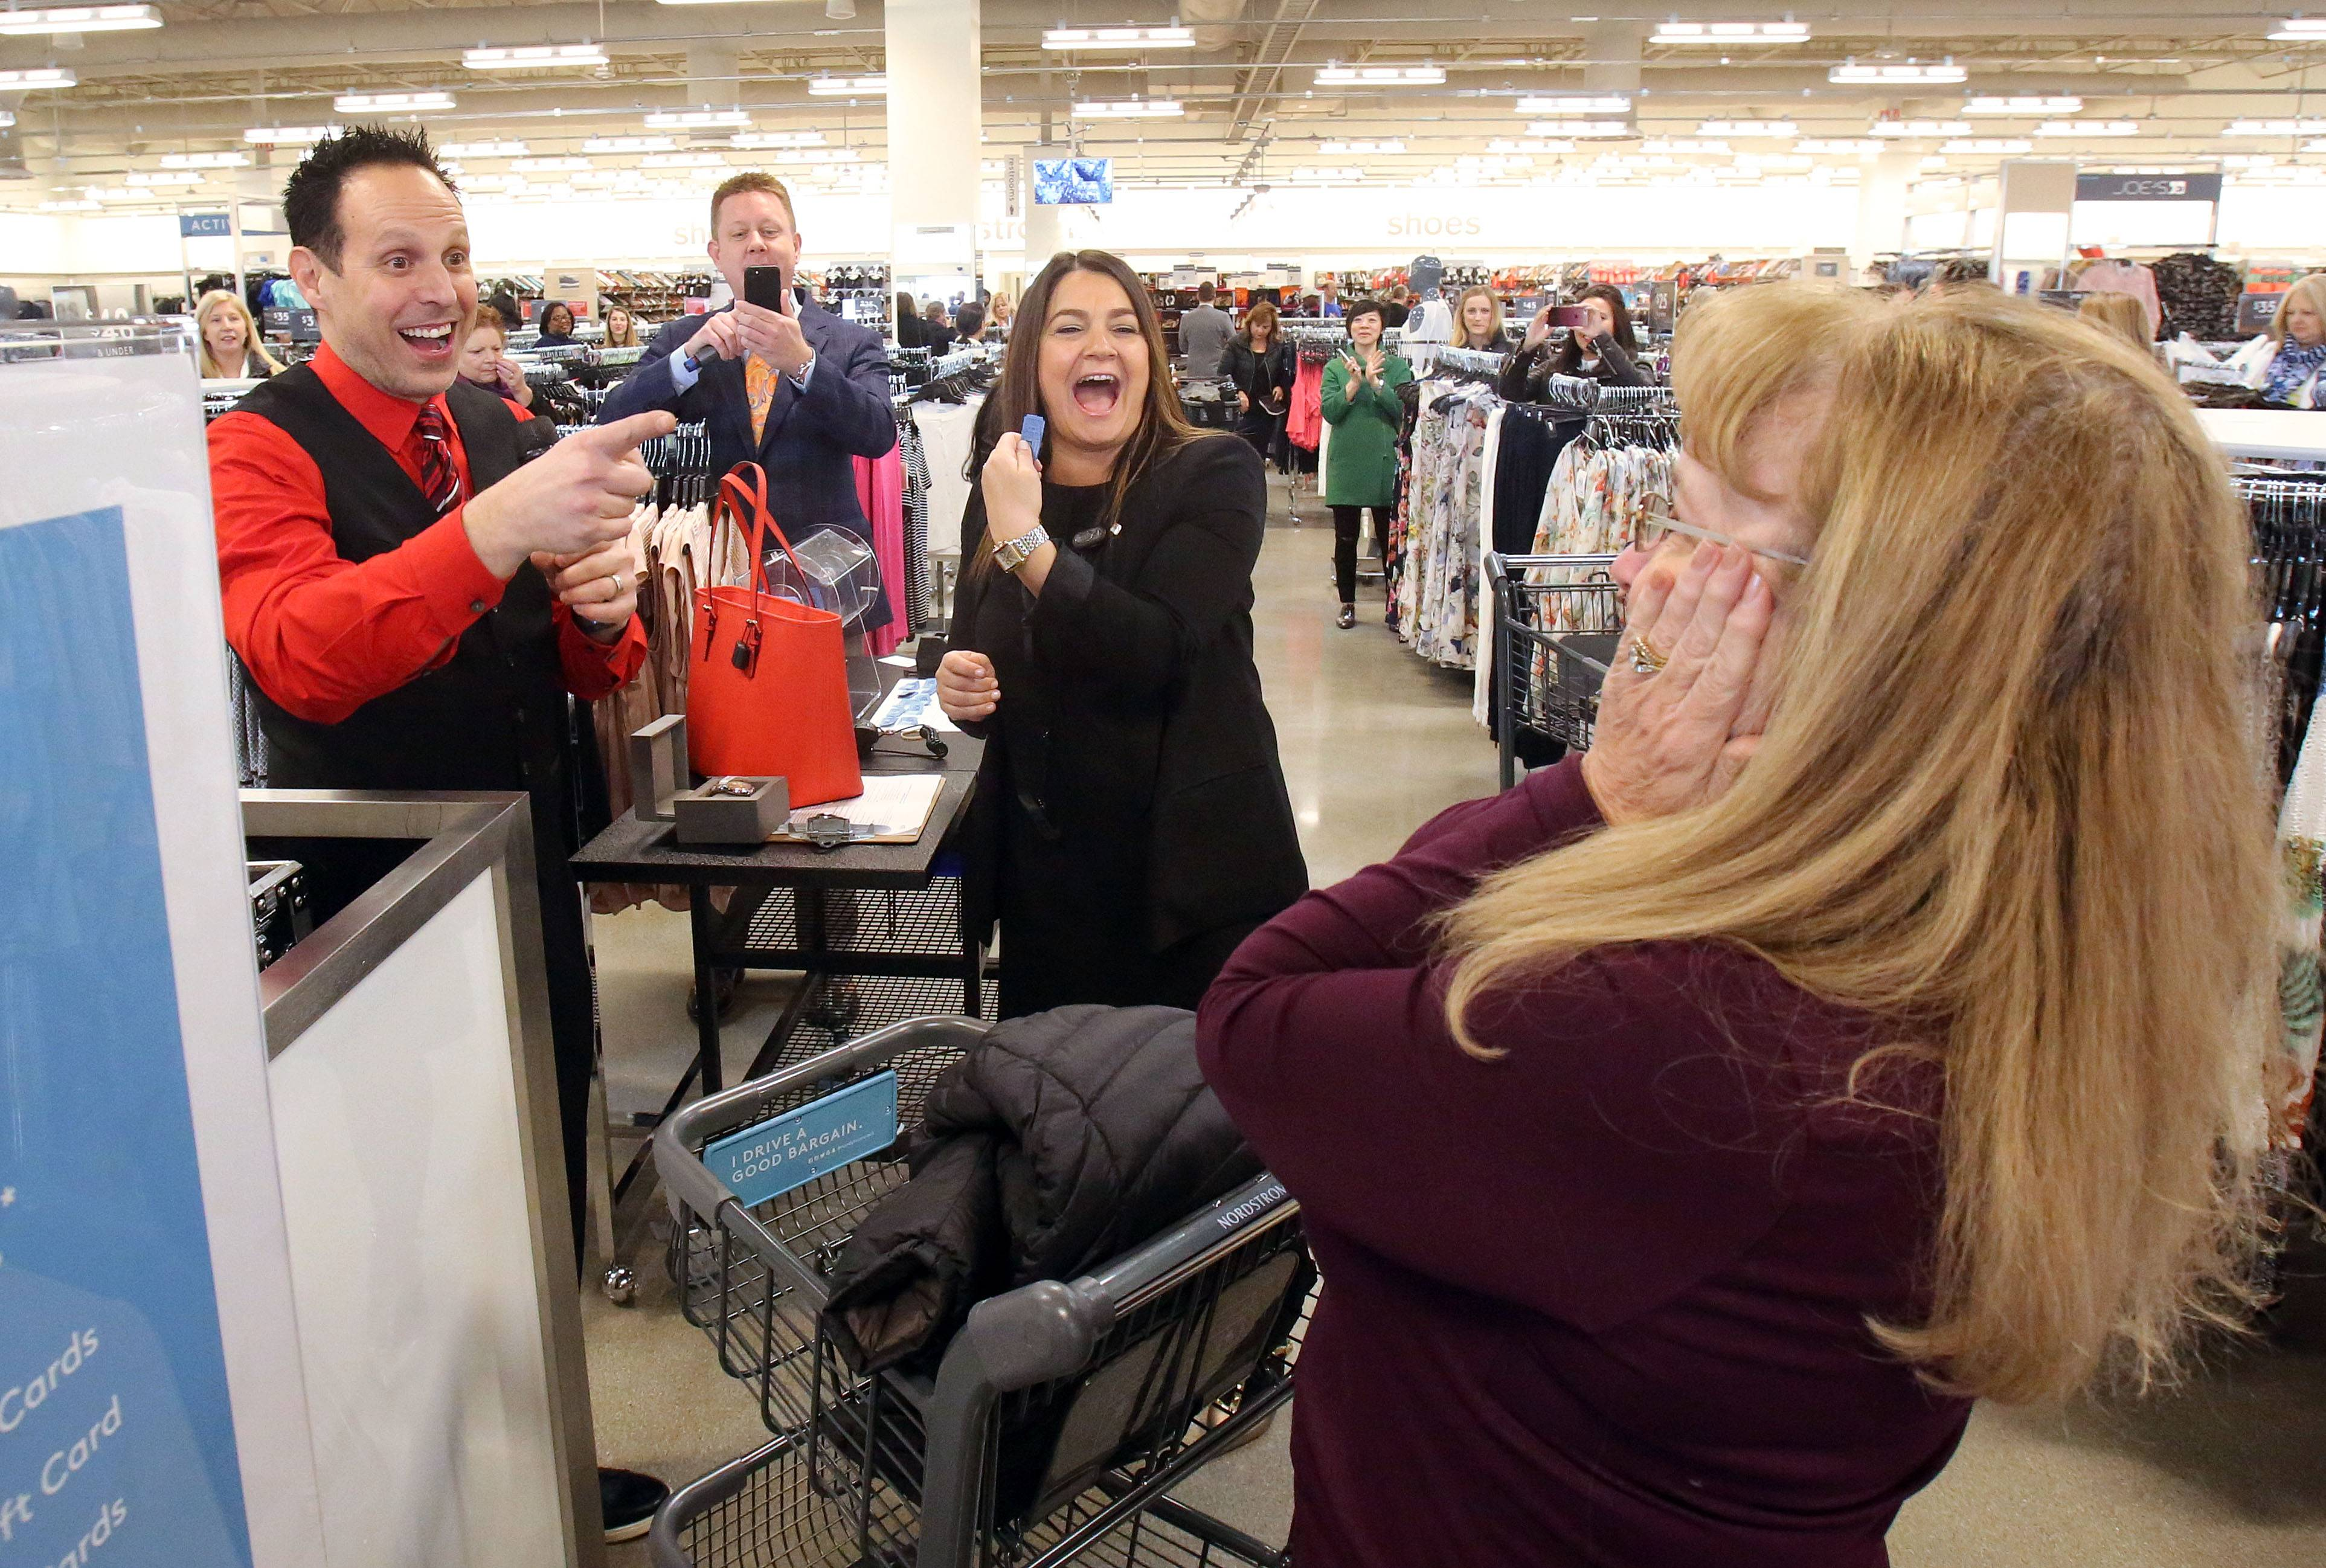 Kathy McKanna of Inverness, right, reacts after winning a $1,000 gift certificate at Nordstrom Rack during the store's grand opening at Kildeer Village Square Thursday morning.